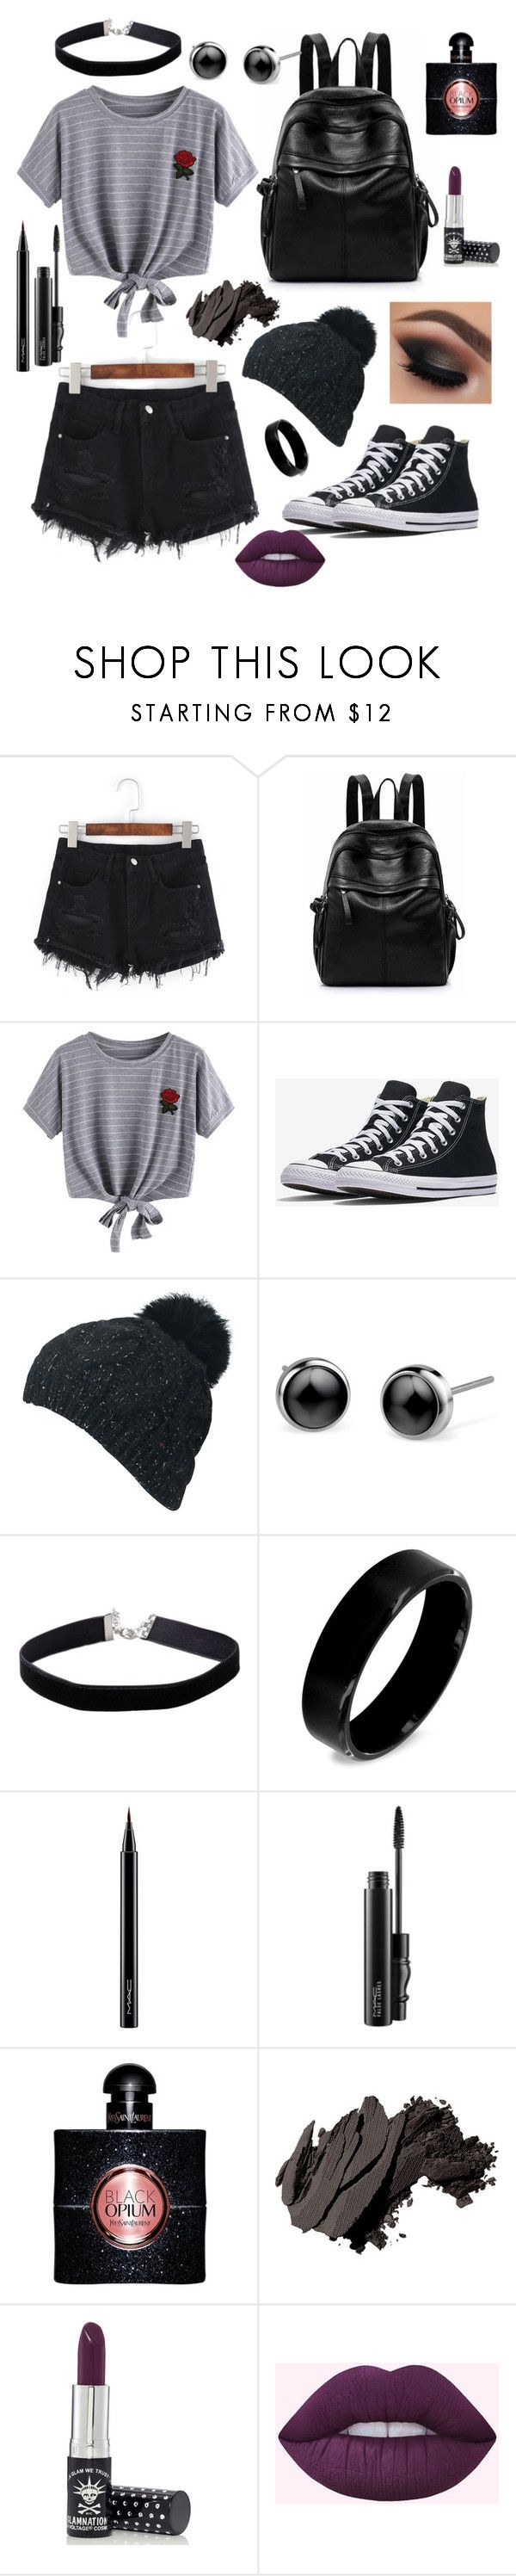 """Blackest Black"" by maddeyreed ❤ liked on Polyvore featuring WithChic, Miss Selfridge, West Coast Jewelry, MAC Cosmetics, Yves Saint Laurent, Bobbi Brown Cosmetics and Manic Panic NYC"